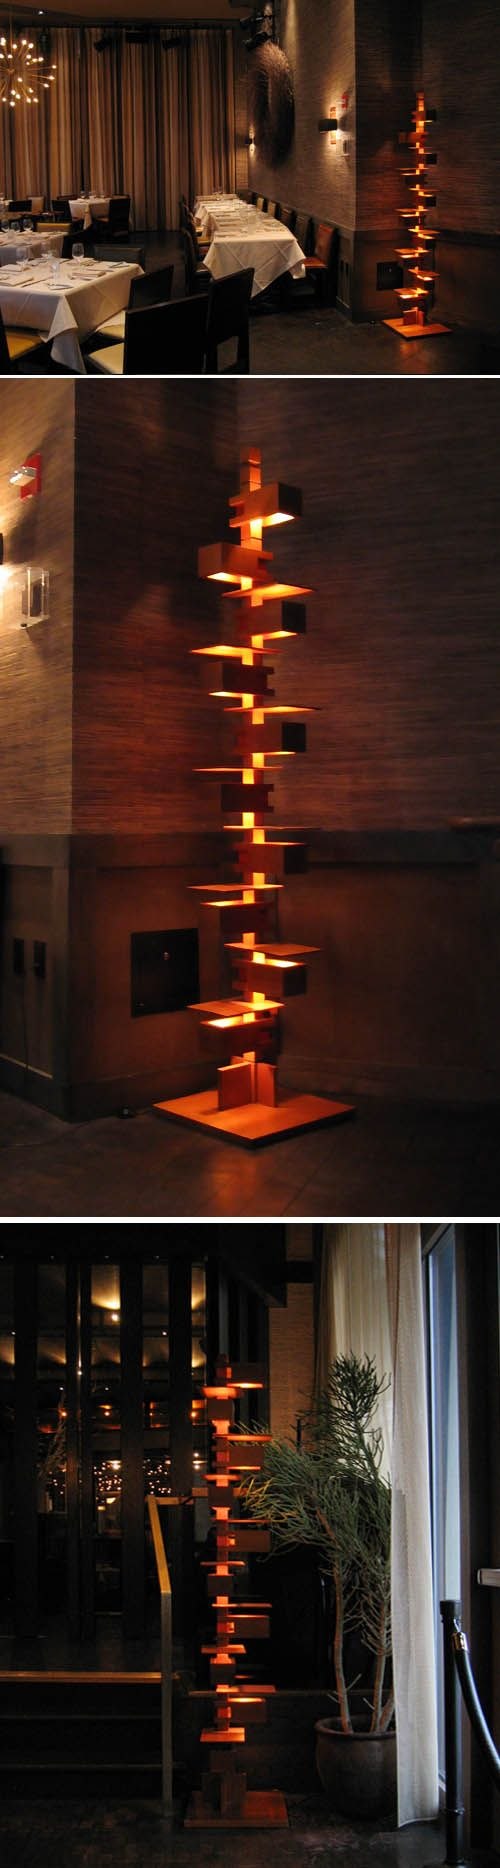 Frank lloyd wright floor lamp plans woodworking projects for Franks flooring